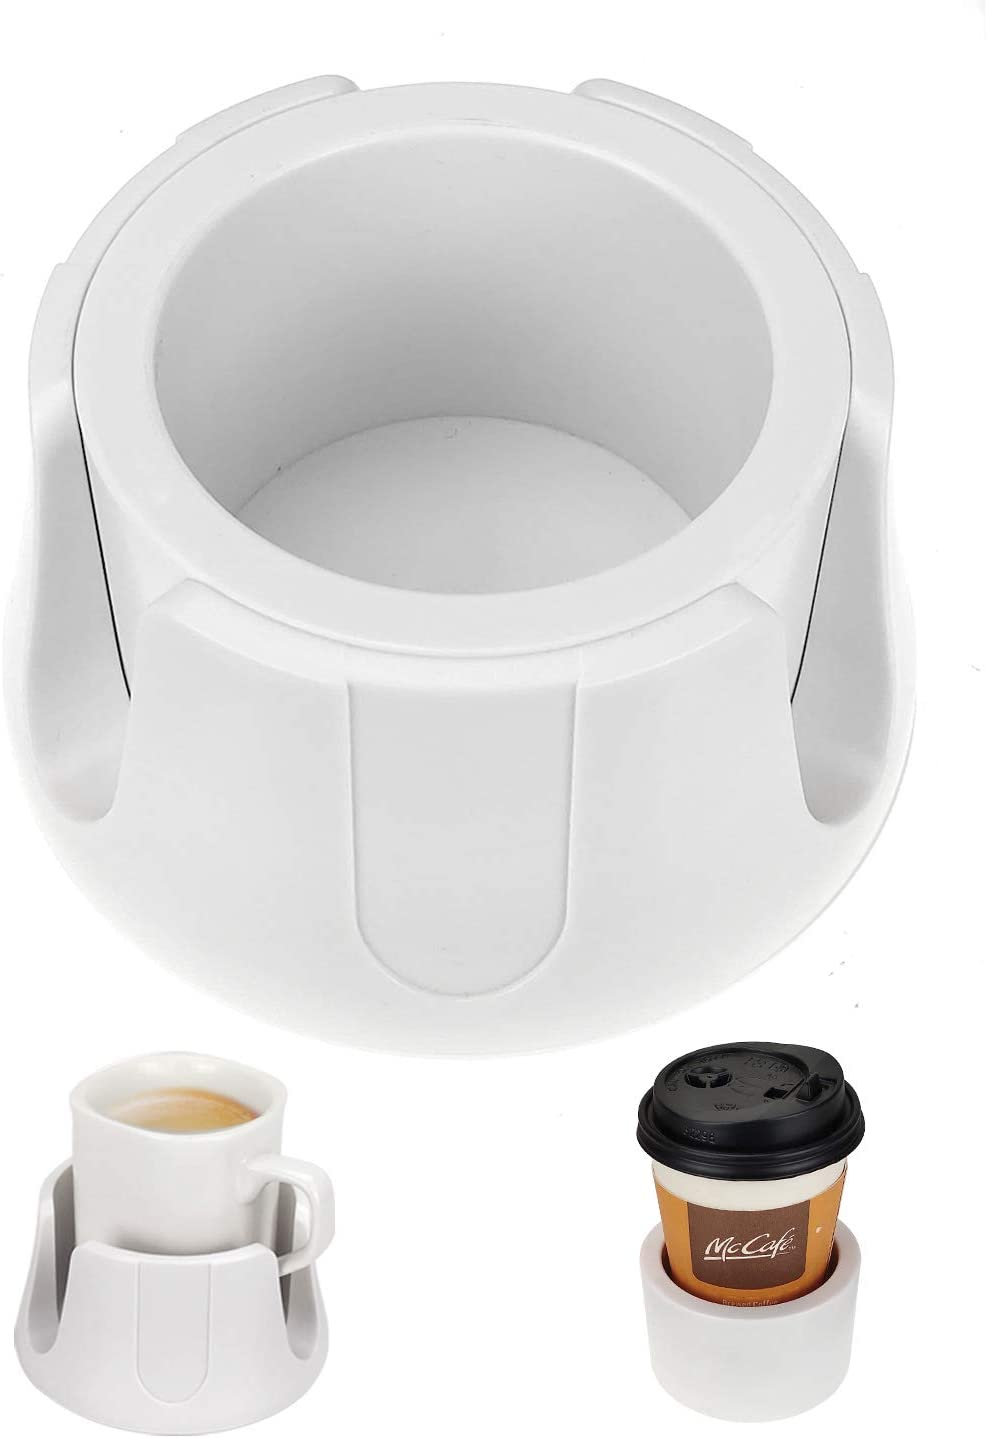 Anti-Spill Cup Holder Drink Coaster with Anti-Slip Mat Fits Drink for Home Office Outdoors (White)